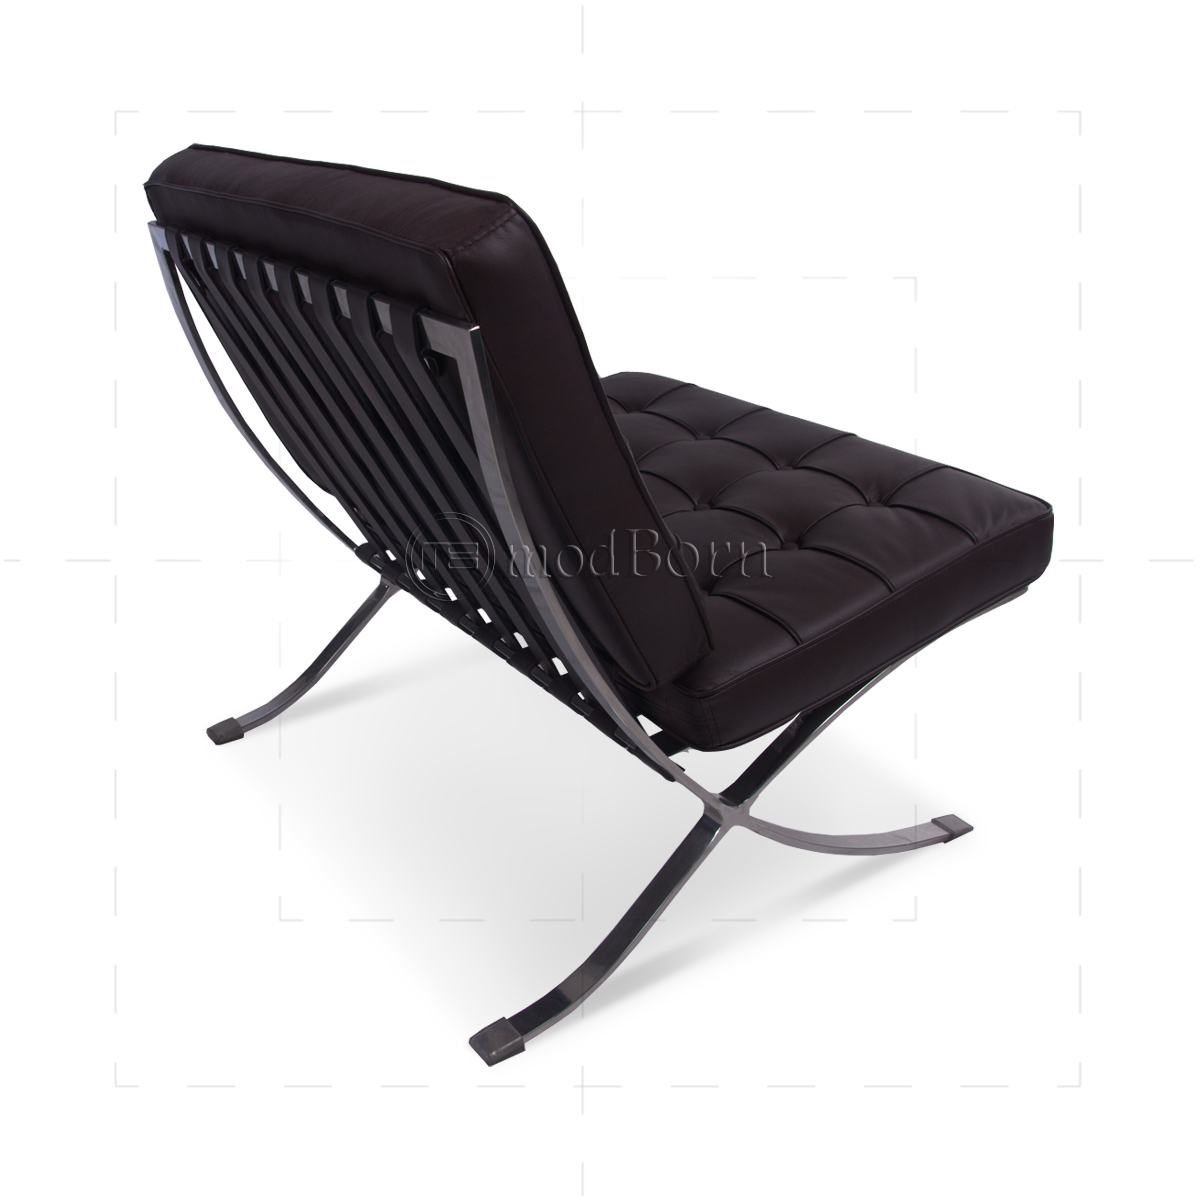 Ludwig mies ven der rohe barcelona style chair brown for Barcelona chair replica deutschland